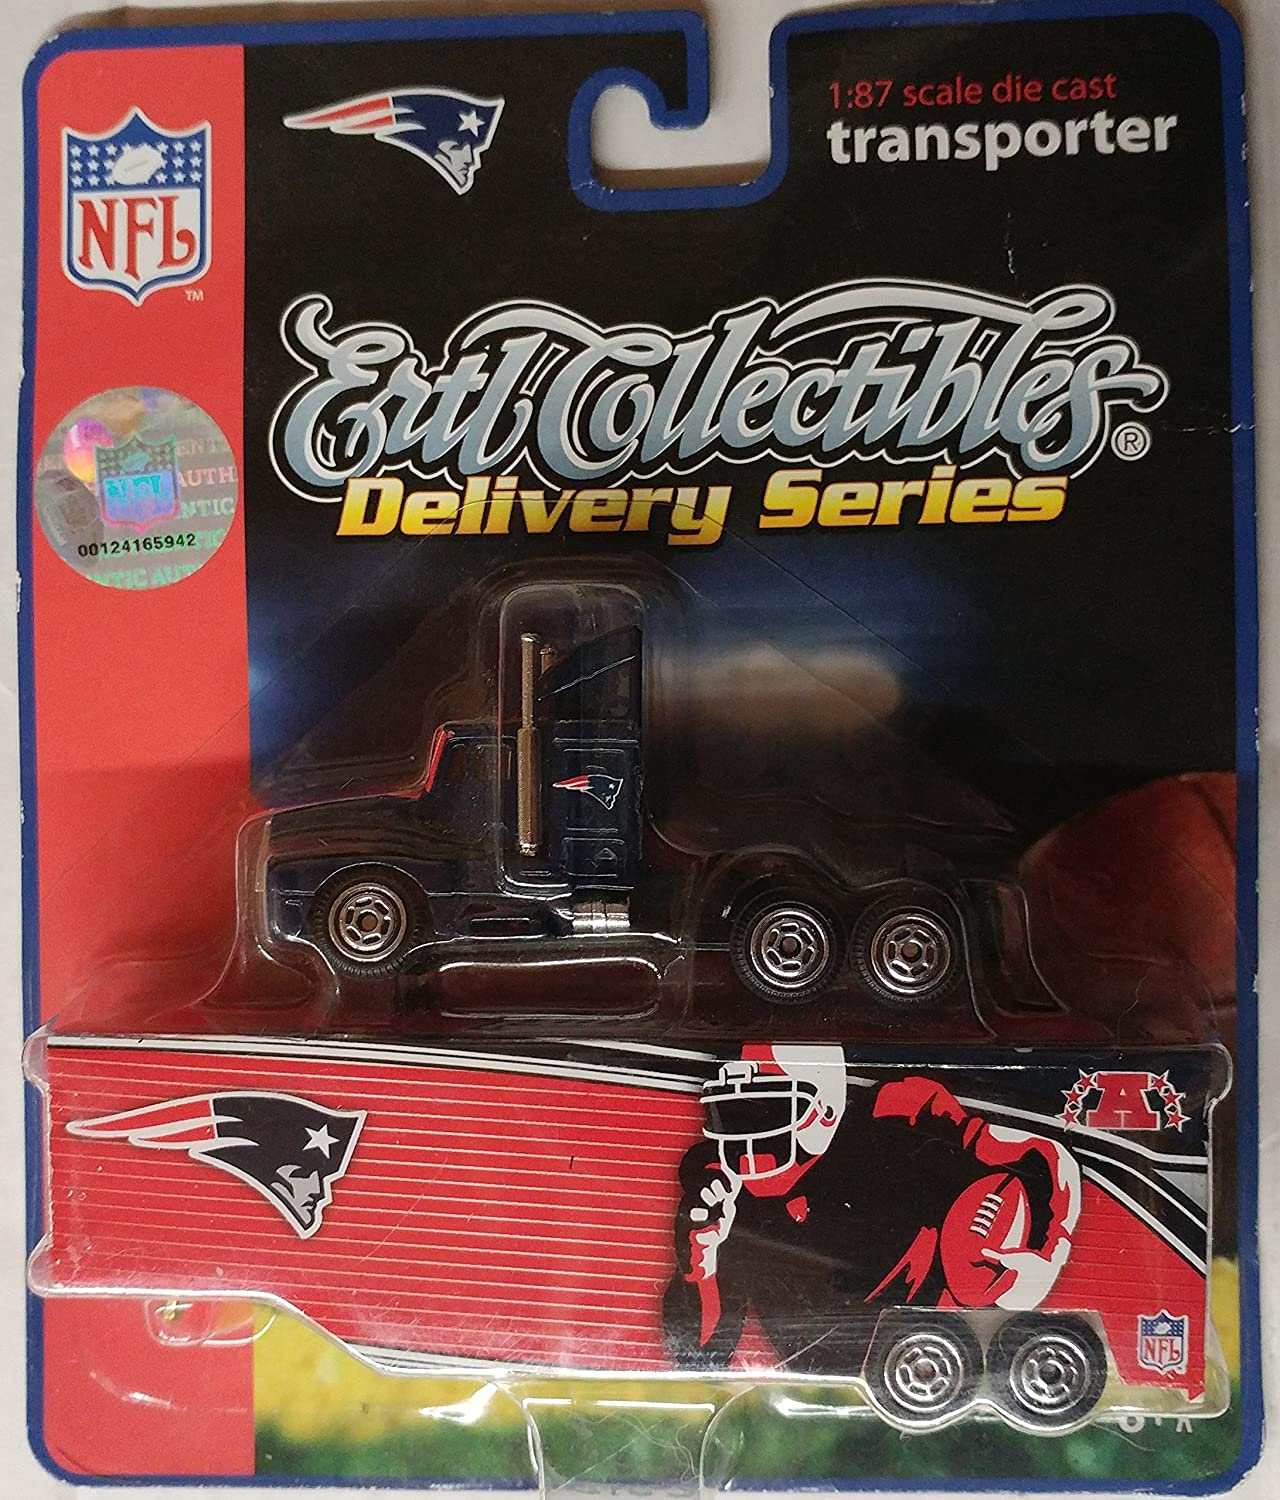 2006 NFL New England Patriots 1:87 Scale Die Cast ERTL Transporter Truck Delivery Series